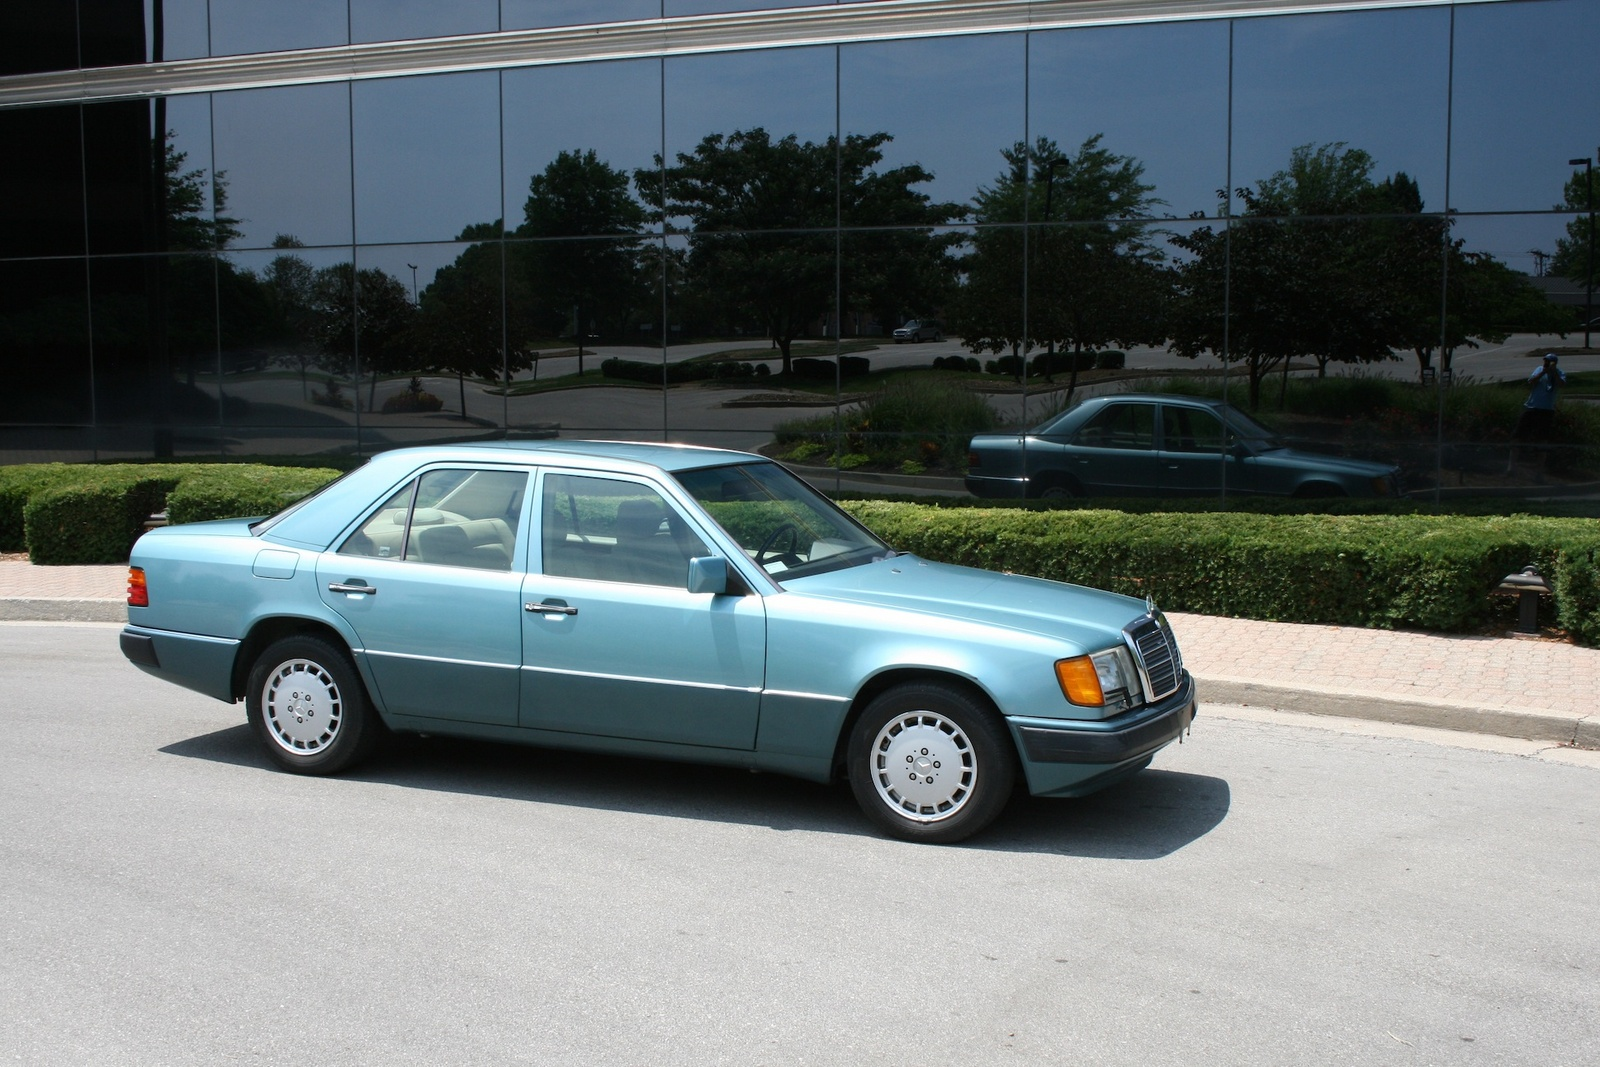 1993 mercedes benz 300 class pictures cargurus for 1993 mercedes benz 300sd